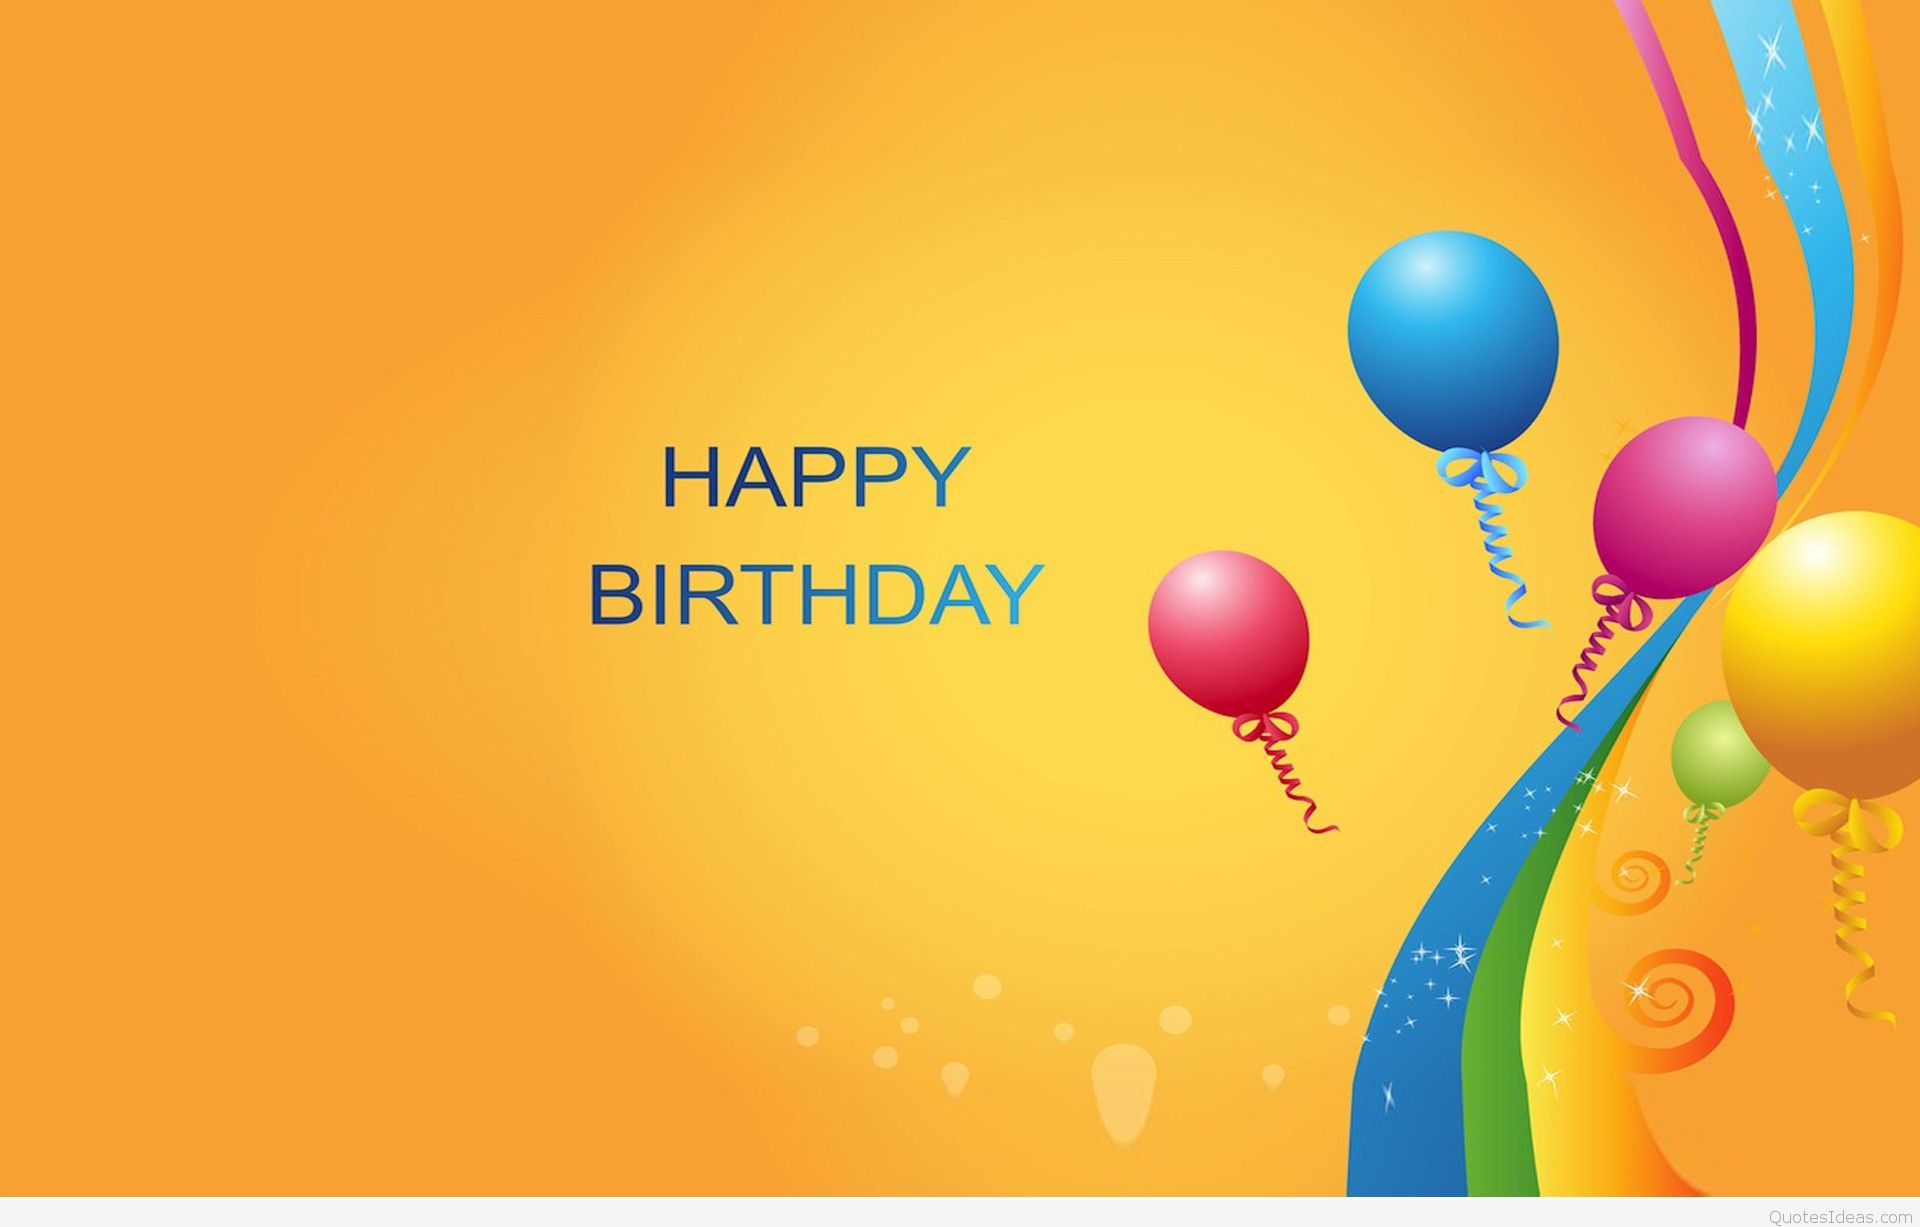 birthday greetings background image ; Happy-Birthday-Wishes-Wallpapers